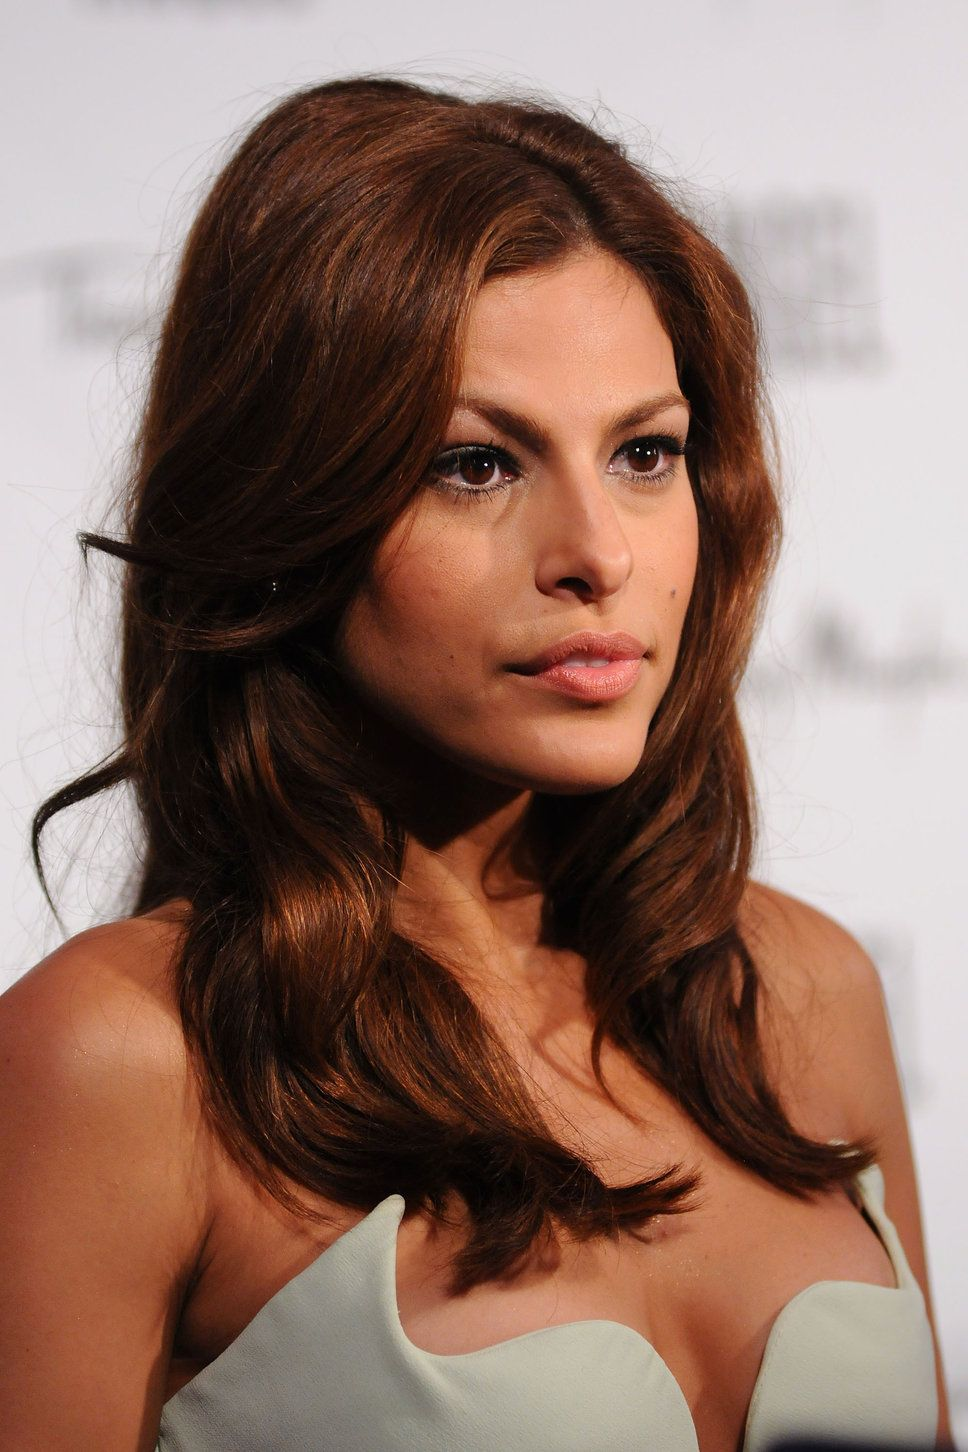 Hair color for dark skin tone - This Rich Medium Brown Hair Color Complements Eva Mendes Tan Skin Tone For A